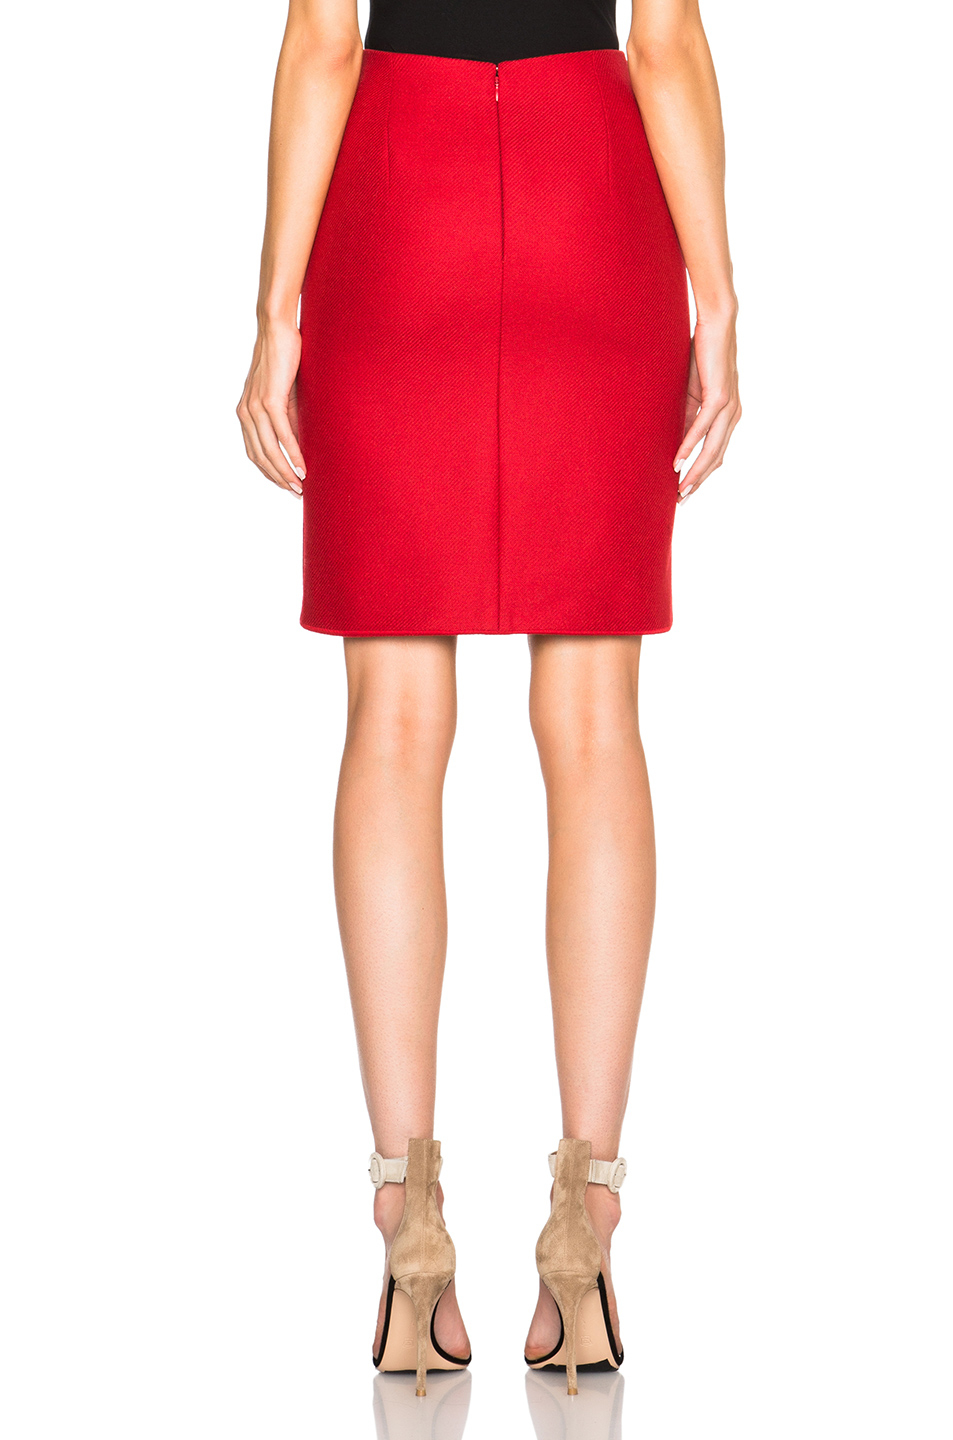 Carven Knee Length Skirt in Red | Lyst